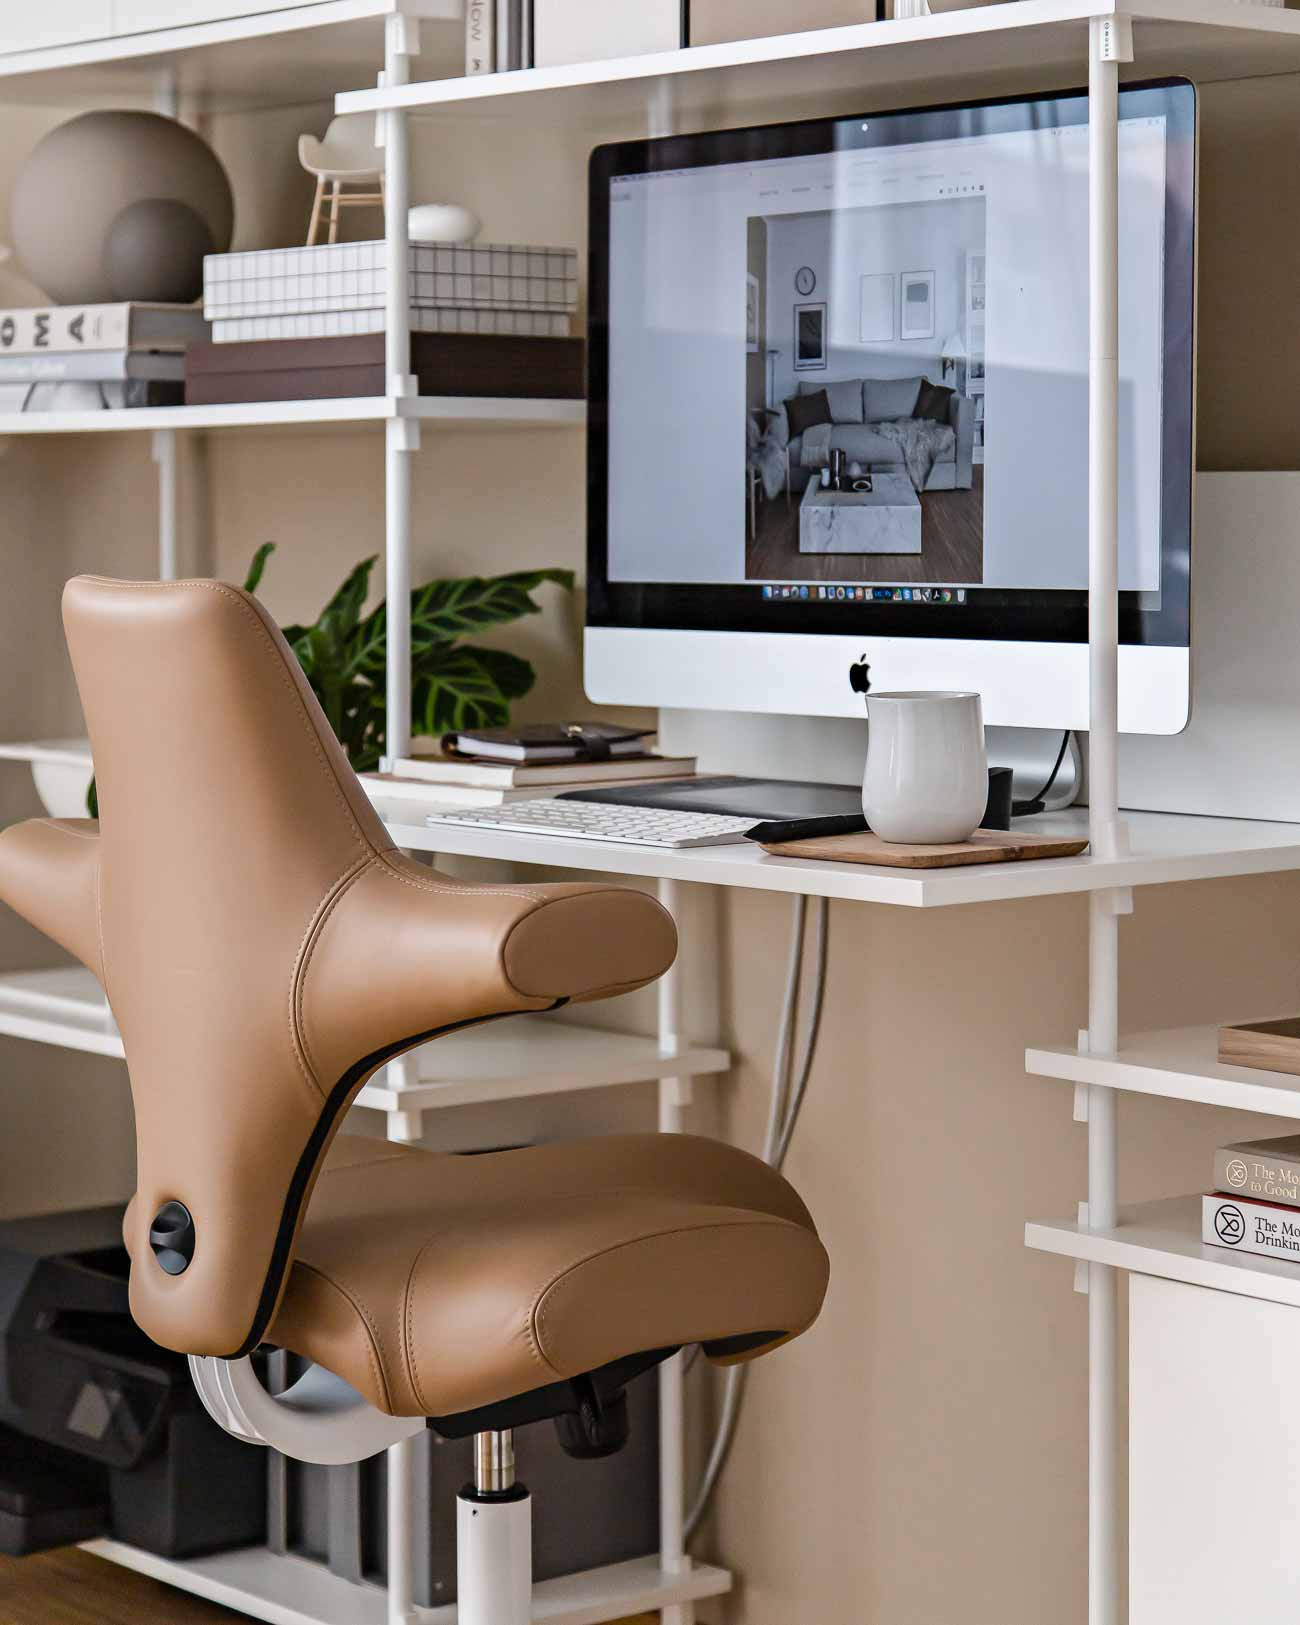 HÅG Capisco in brown leather at home office desk in living room